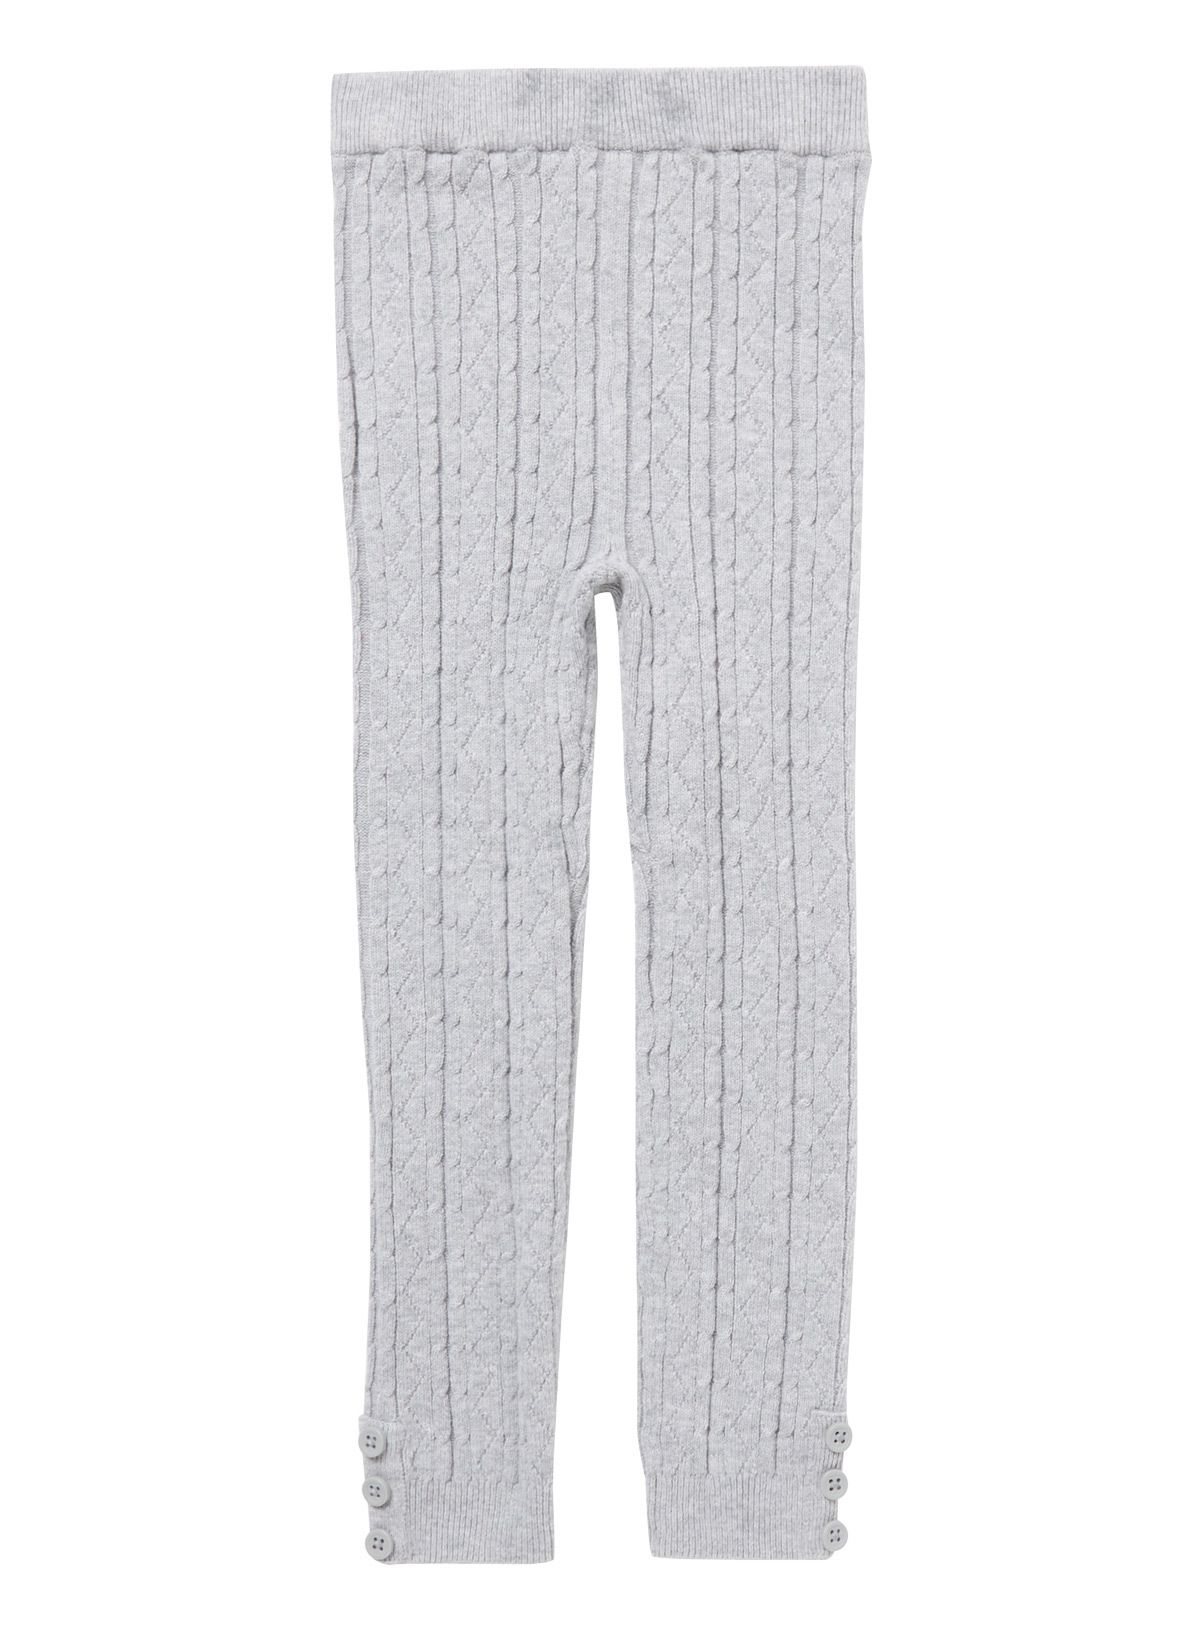 57a488f16f5428 Bolster their winter essentials with these classic cable knit tights. In  grey, they are